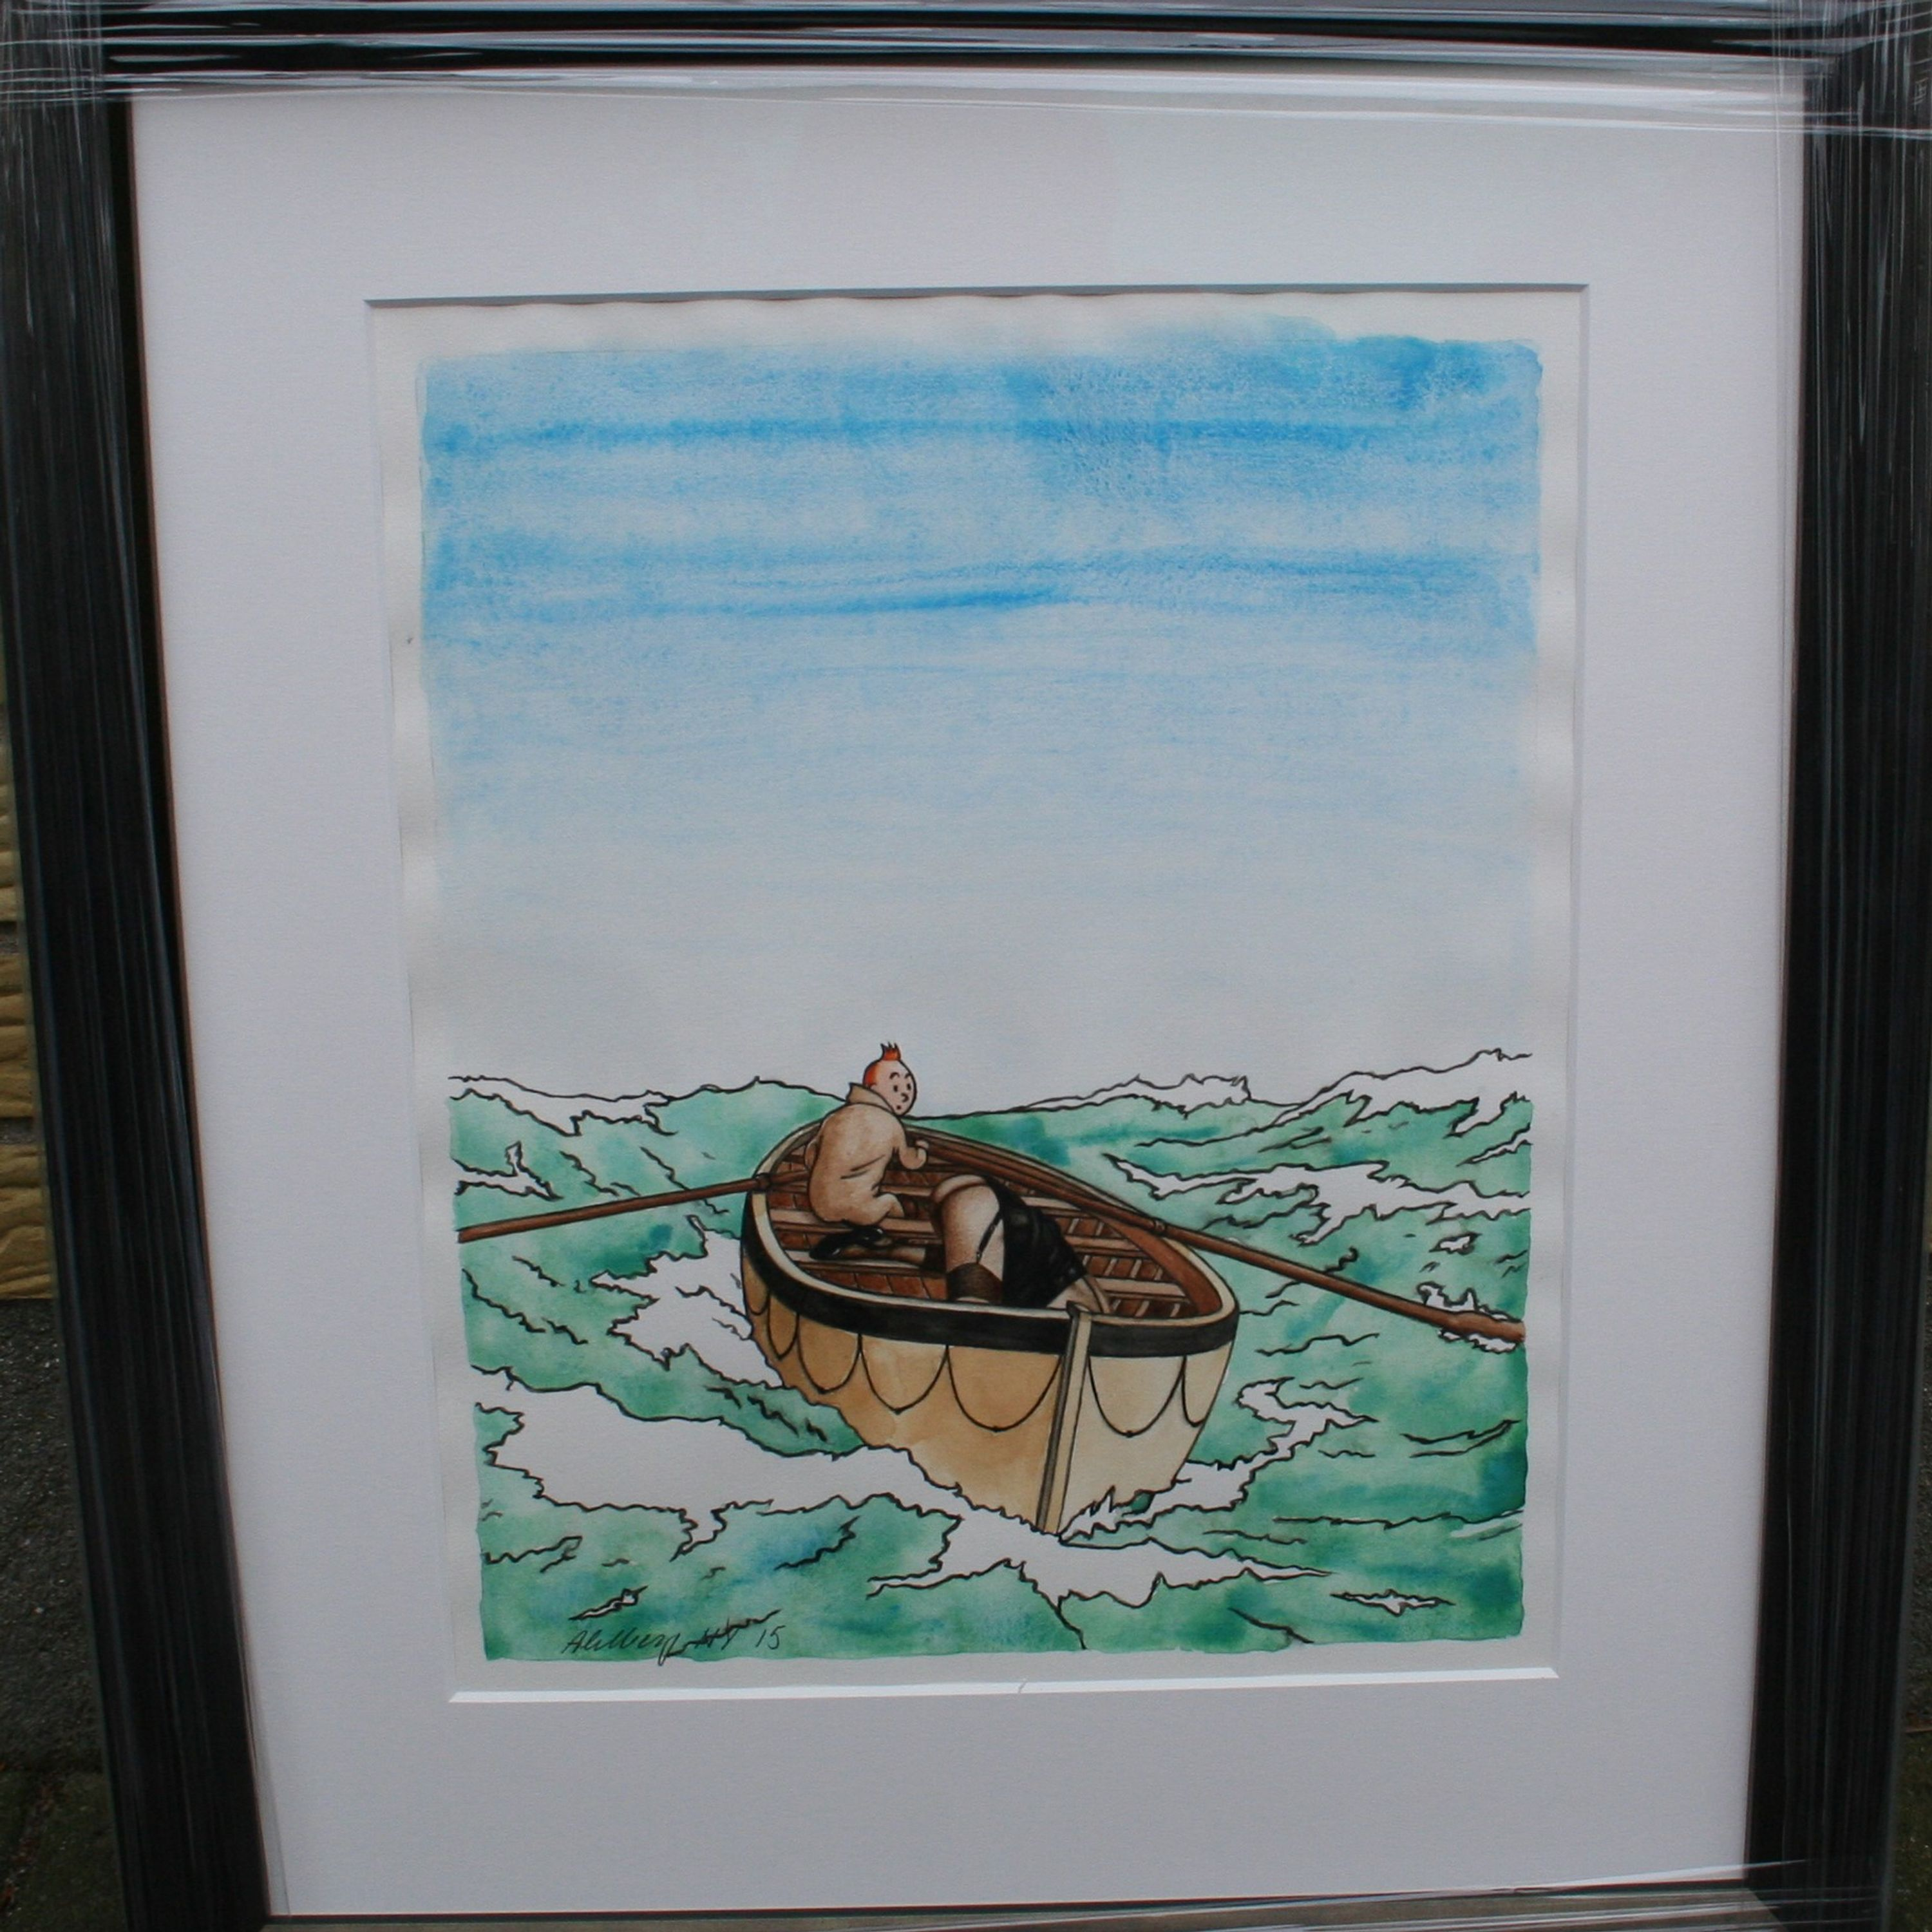 The Boat by Ole Ahlberg, KM Collection